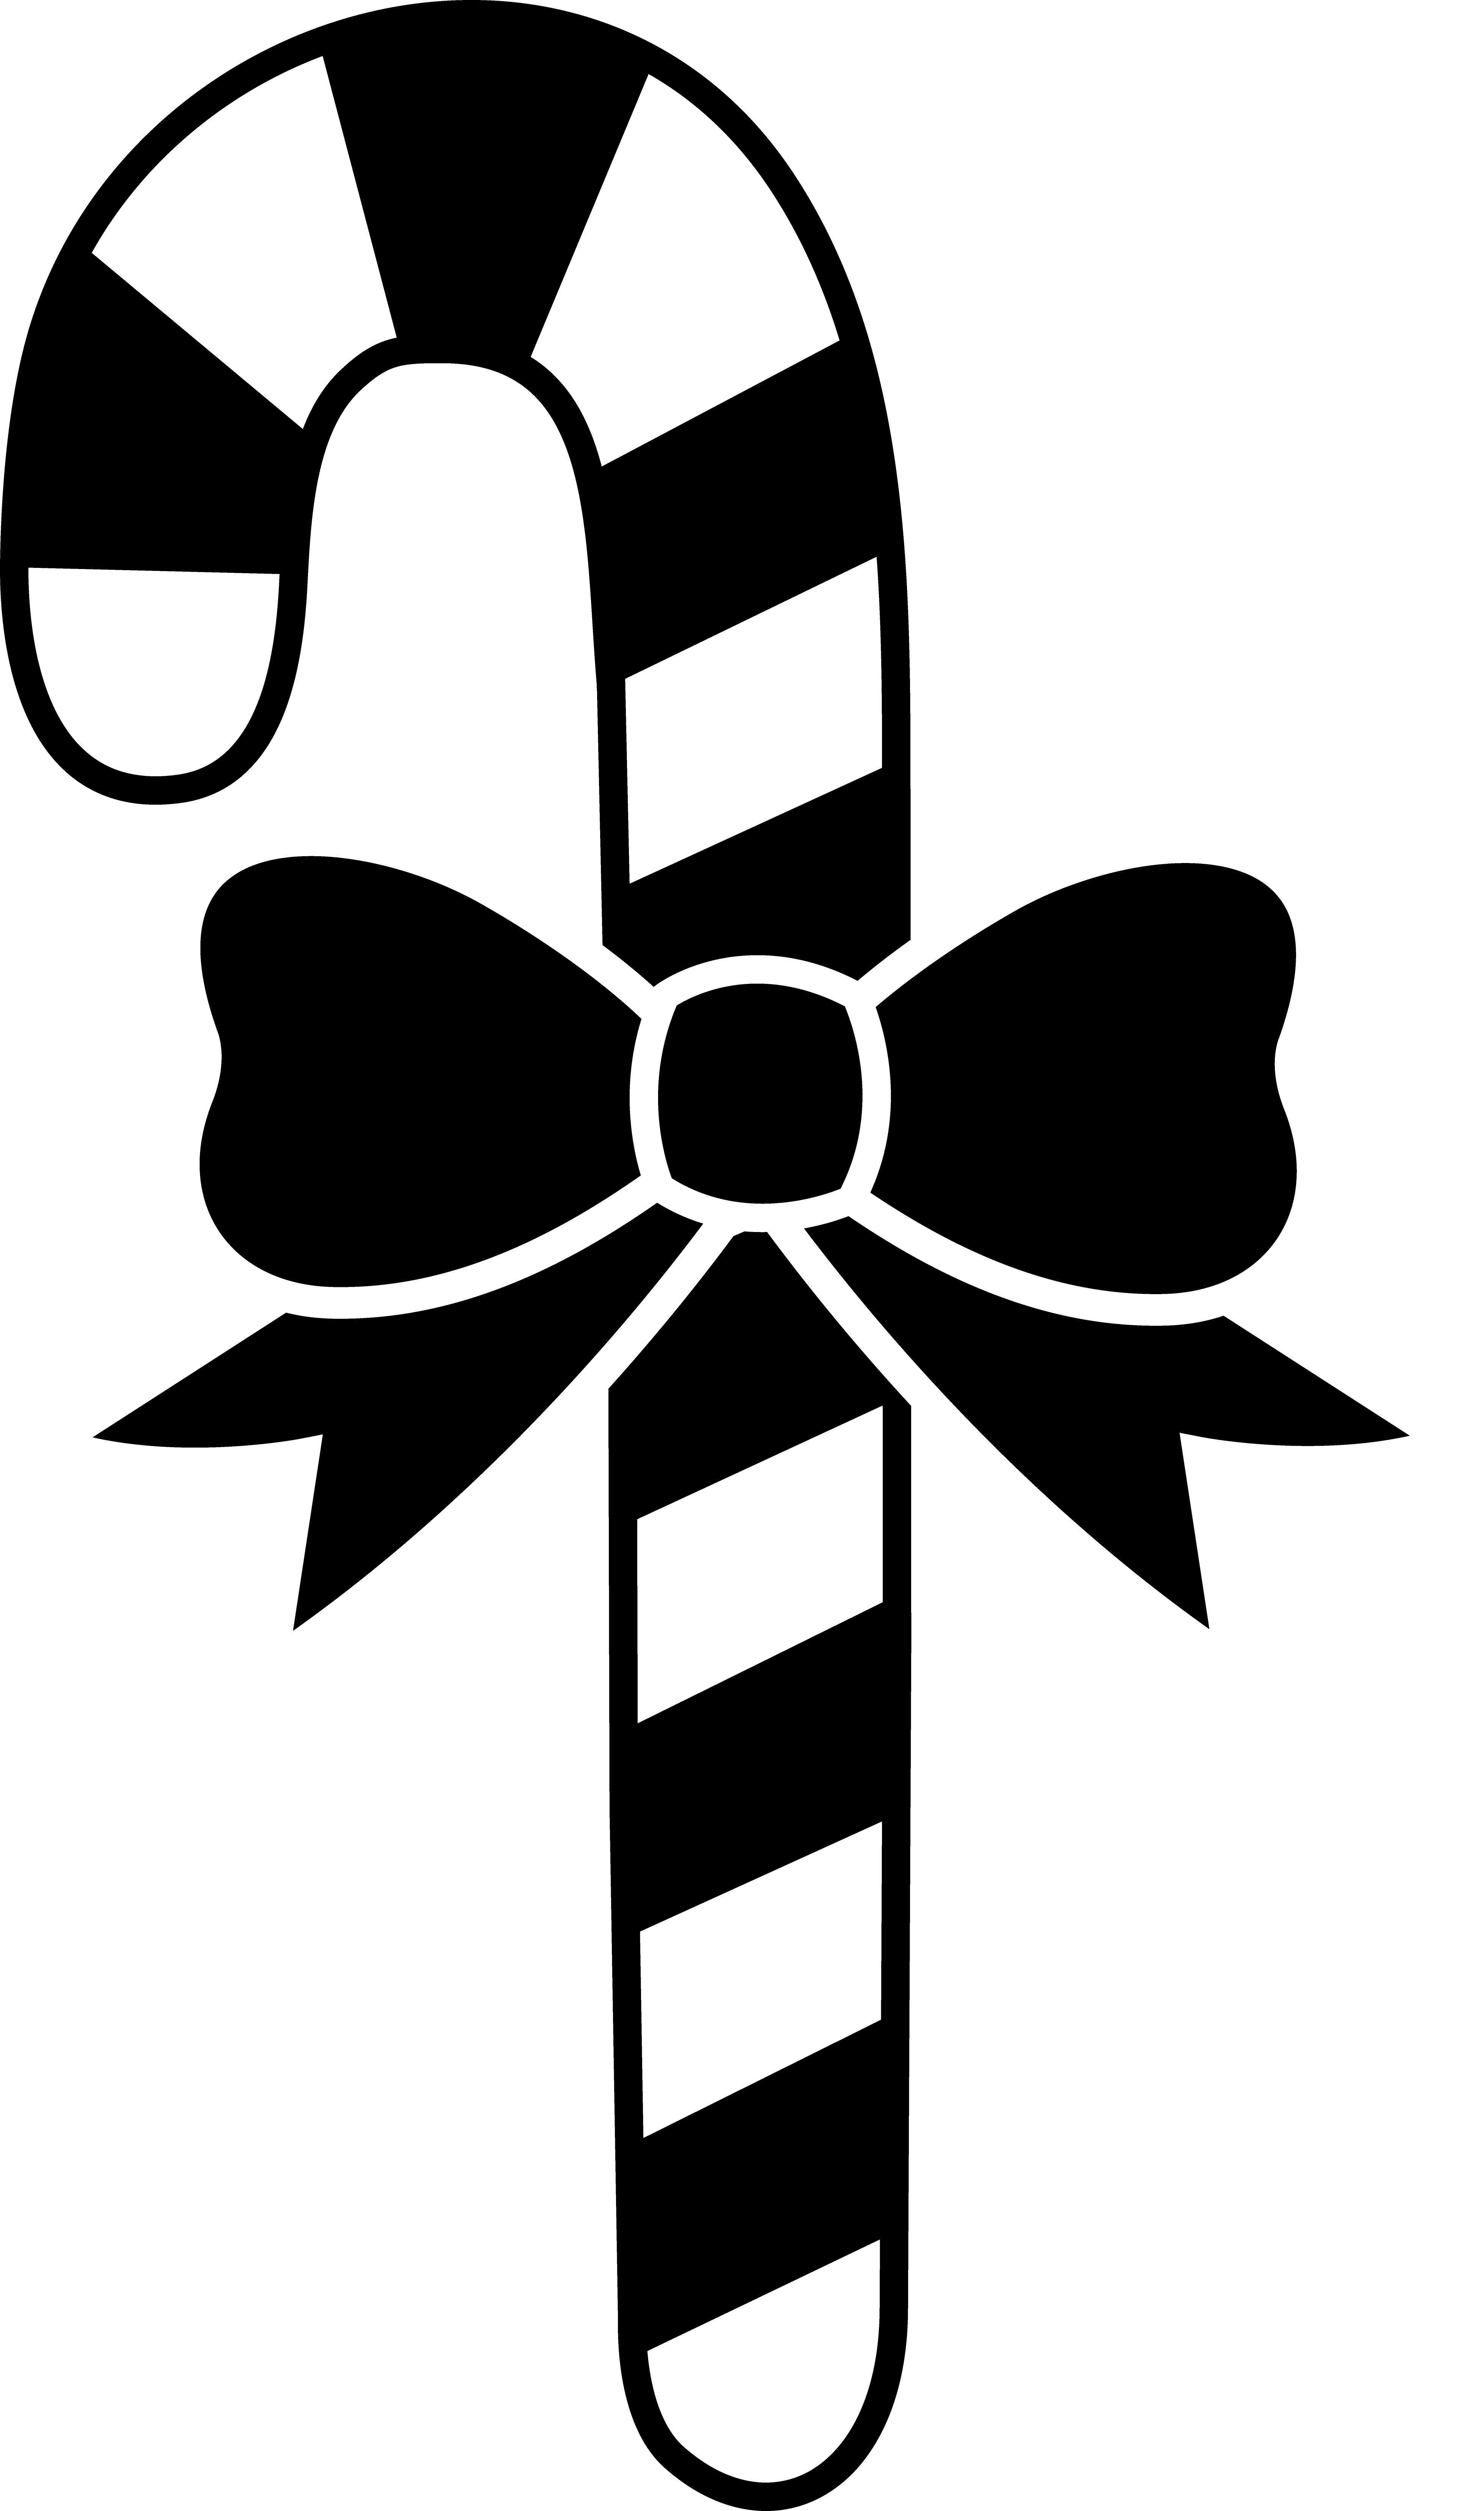 Black And White Candycane With Bow Converttoblack Art Free Clip Art Clip Art